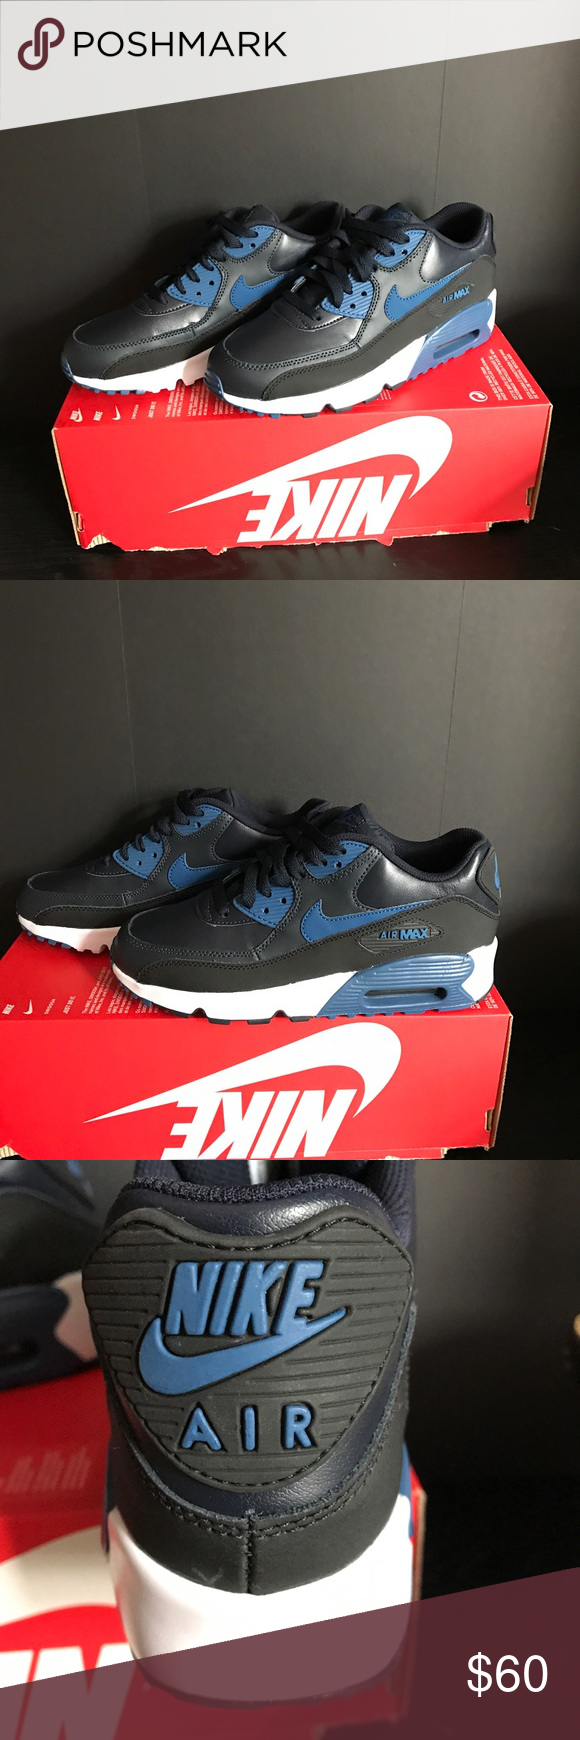 Nike Air Max 90 LTR GS SIZE 6.5 Y Nike Air Max 90 LTD - Navy